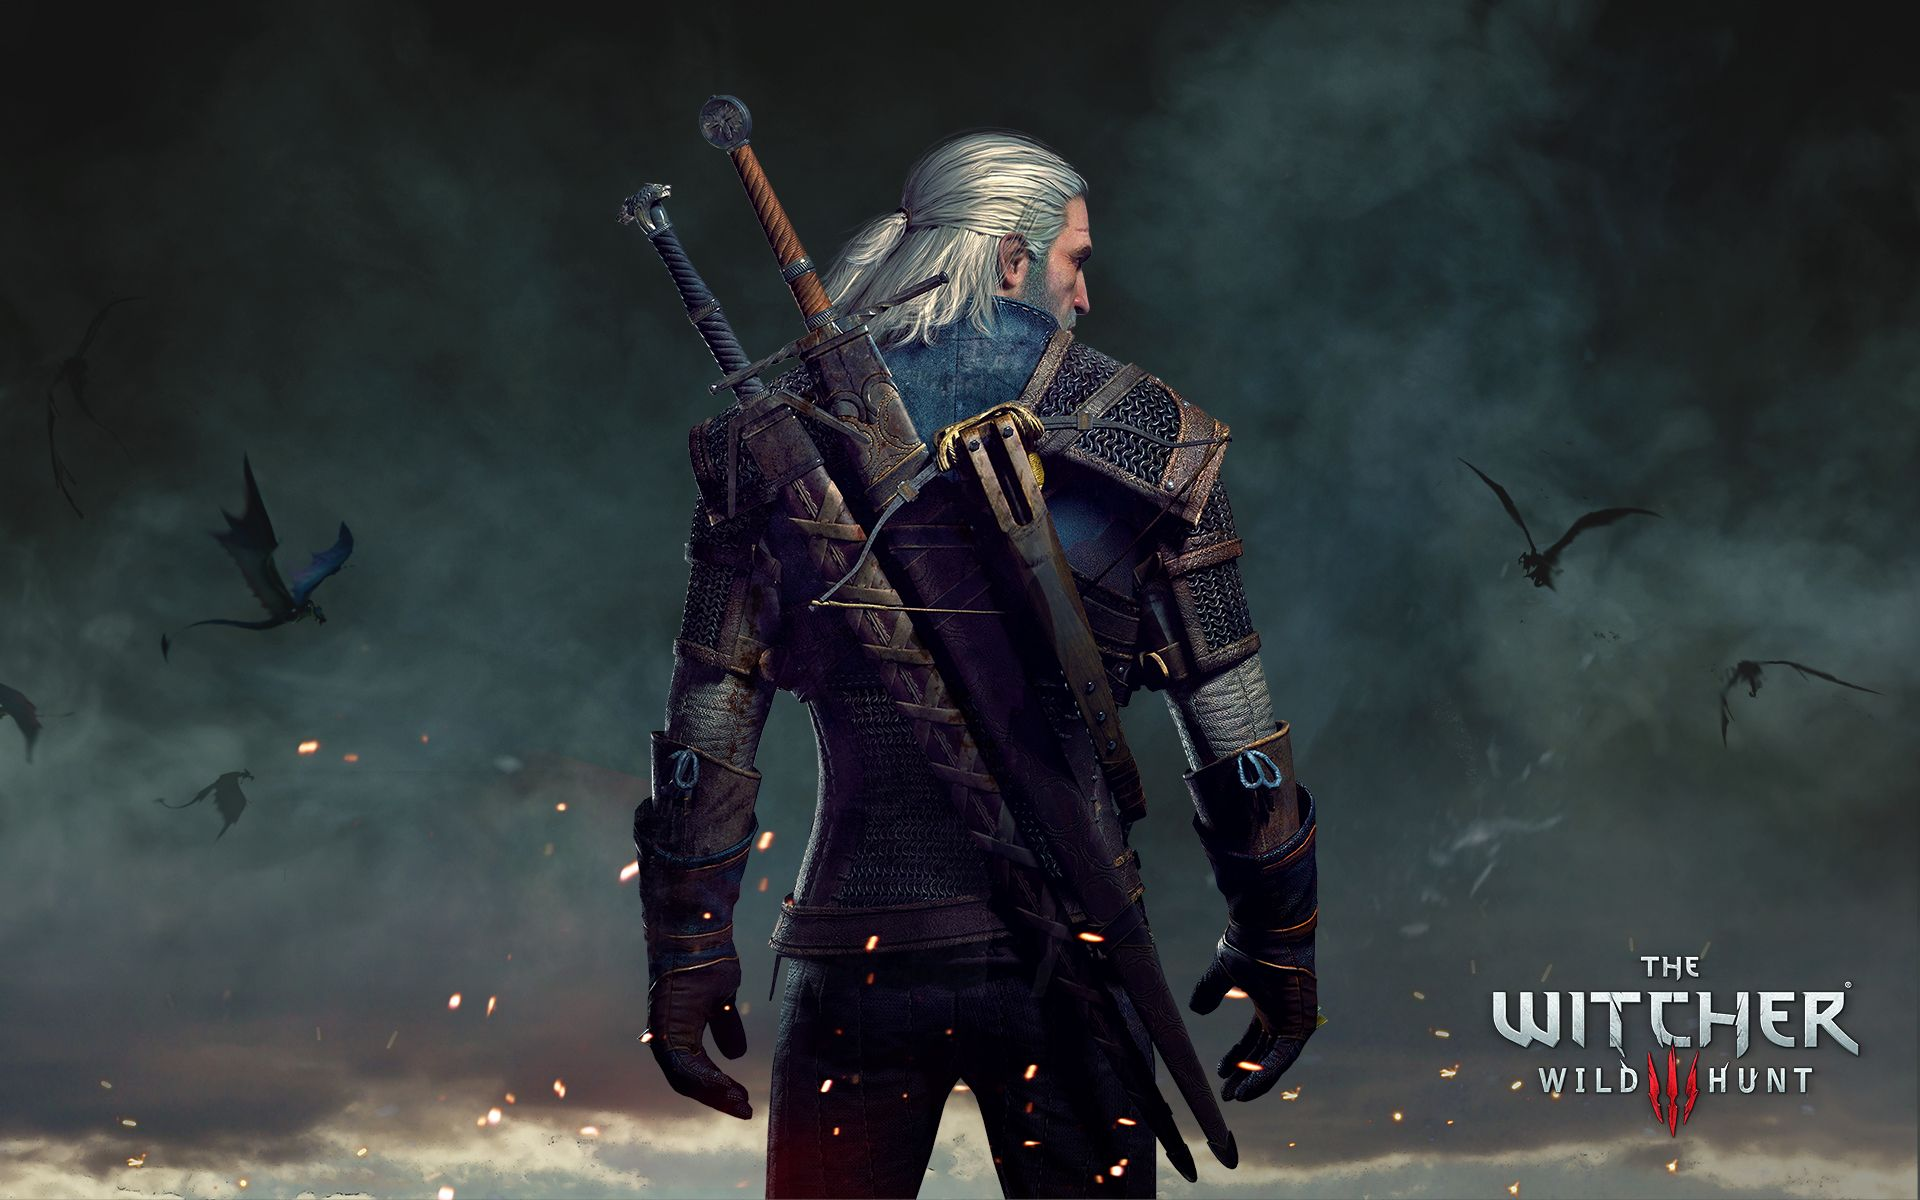 Witcher, Free Wallpaper